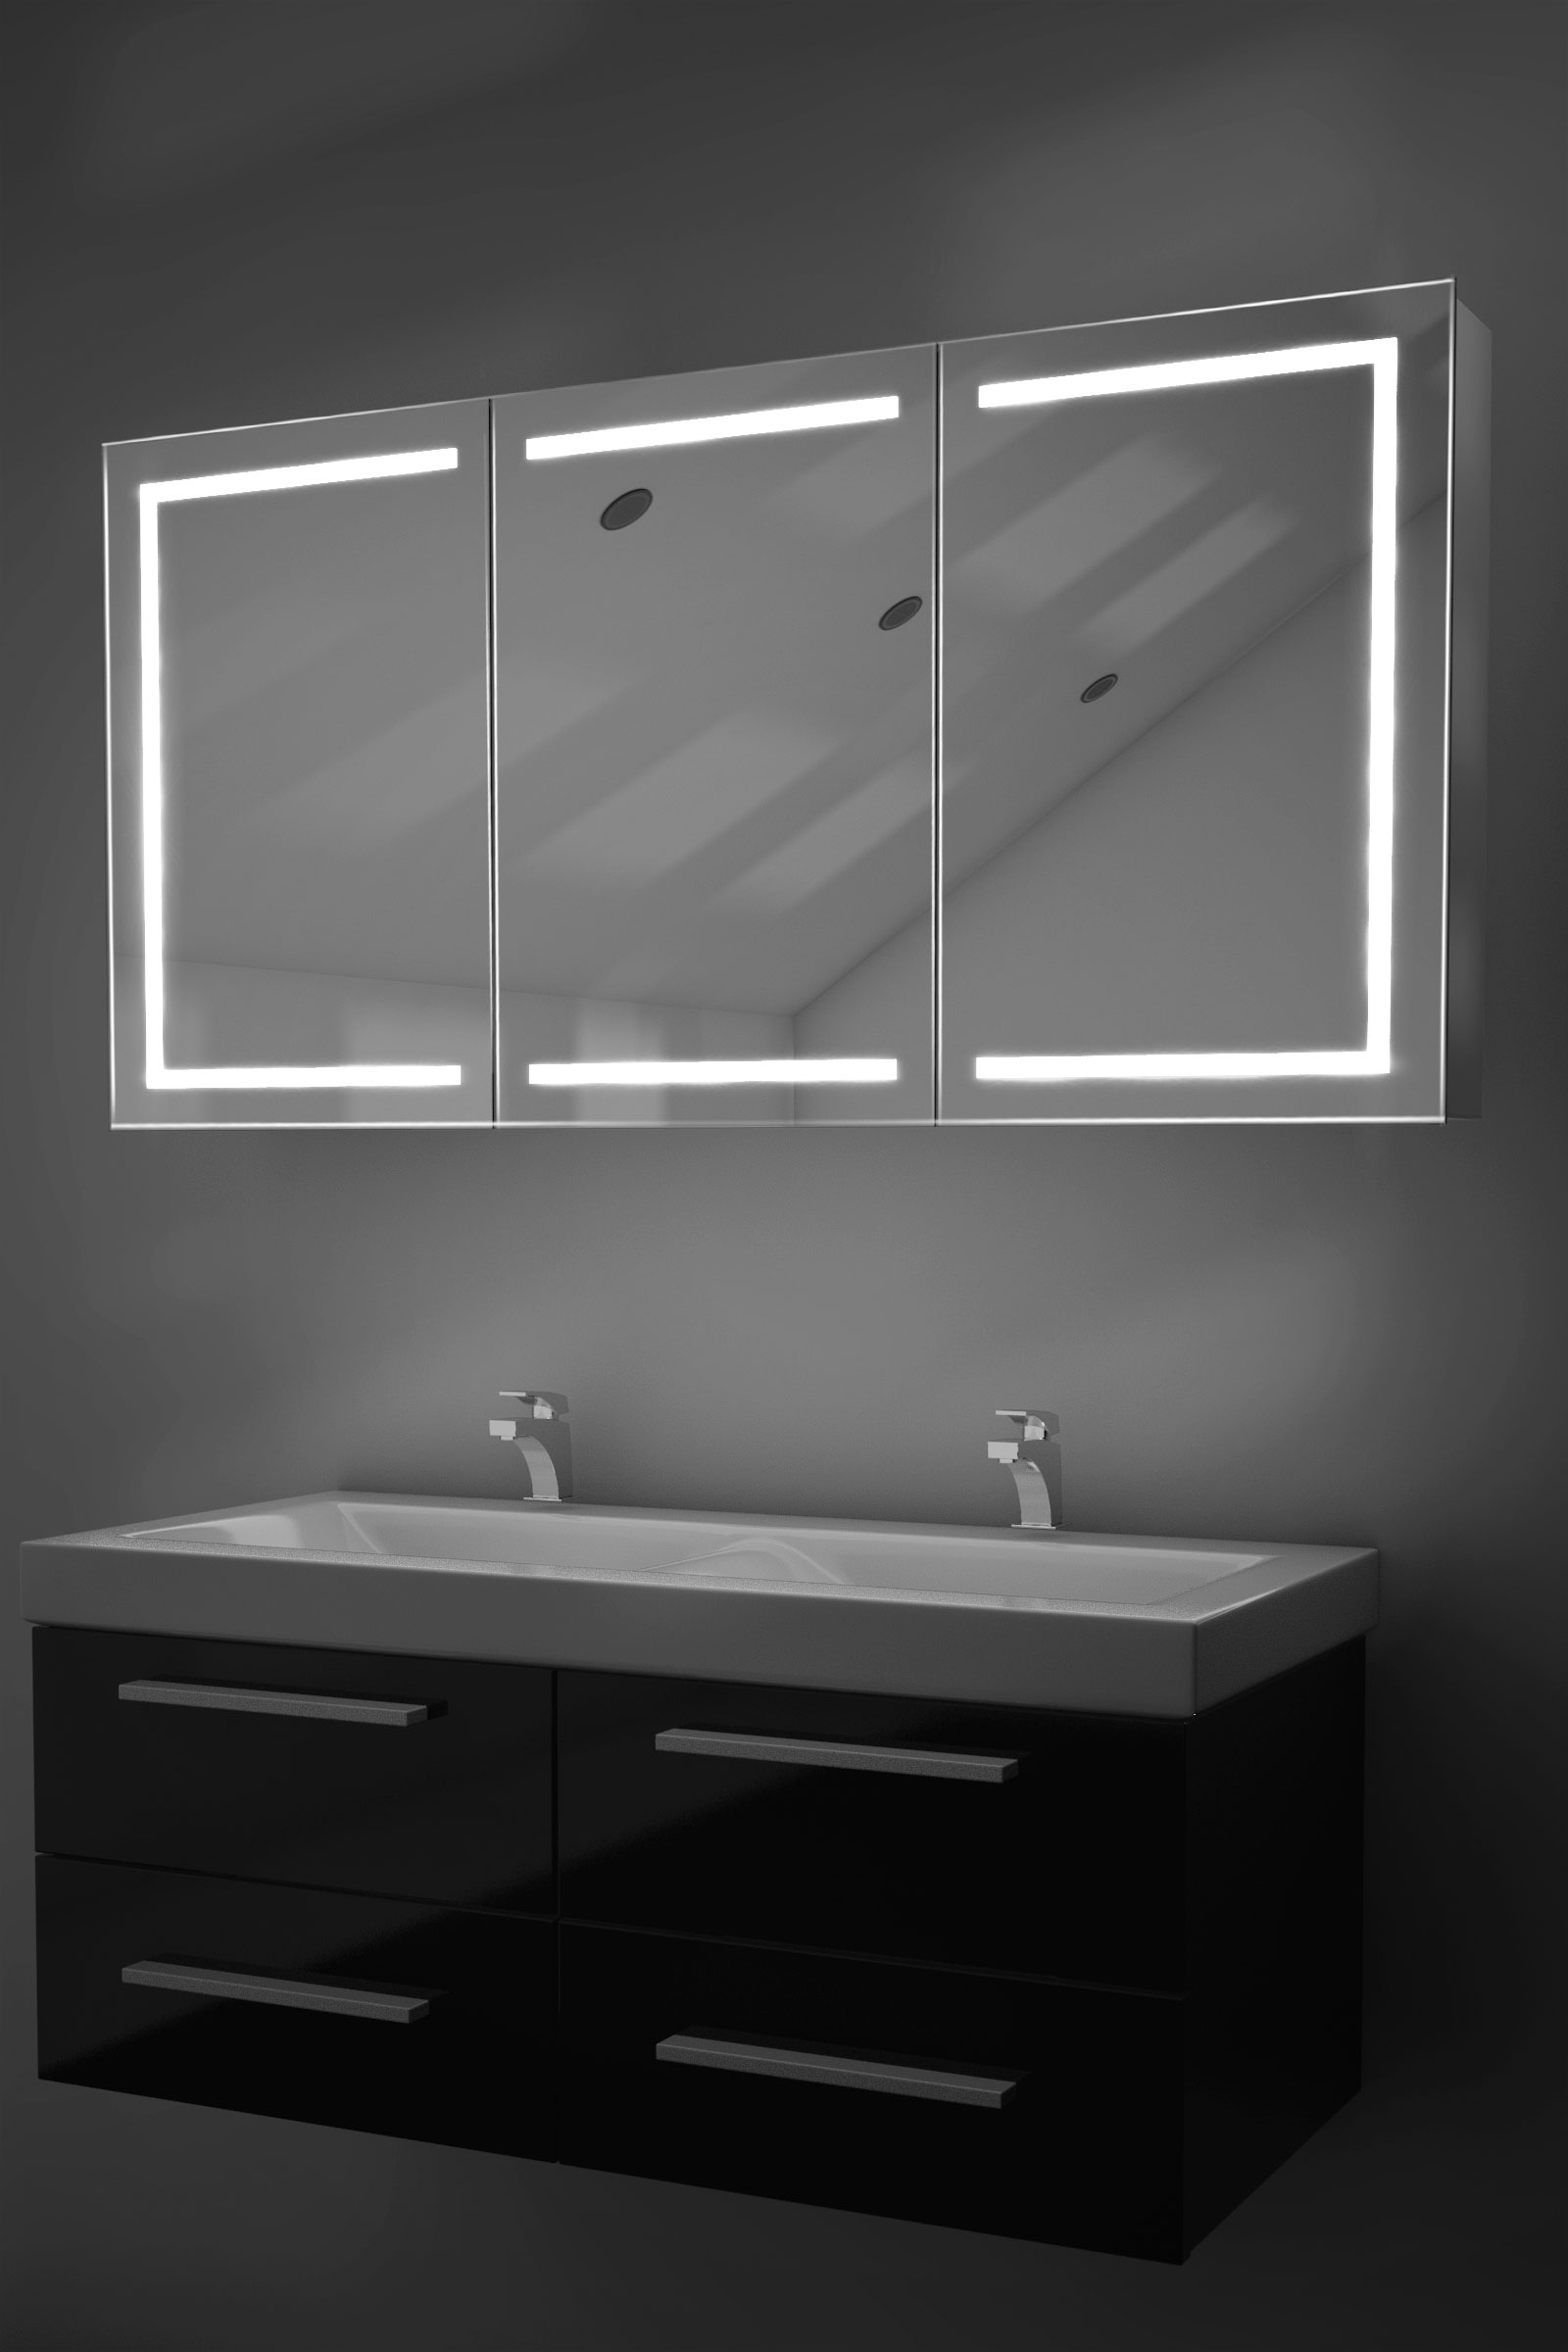 Bathroom Mirrors With Tv Built In Eliza Led Bathroom Cabinet With Demister Pad Sensor